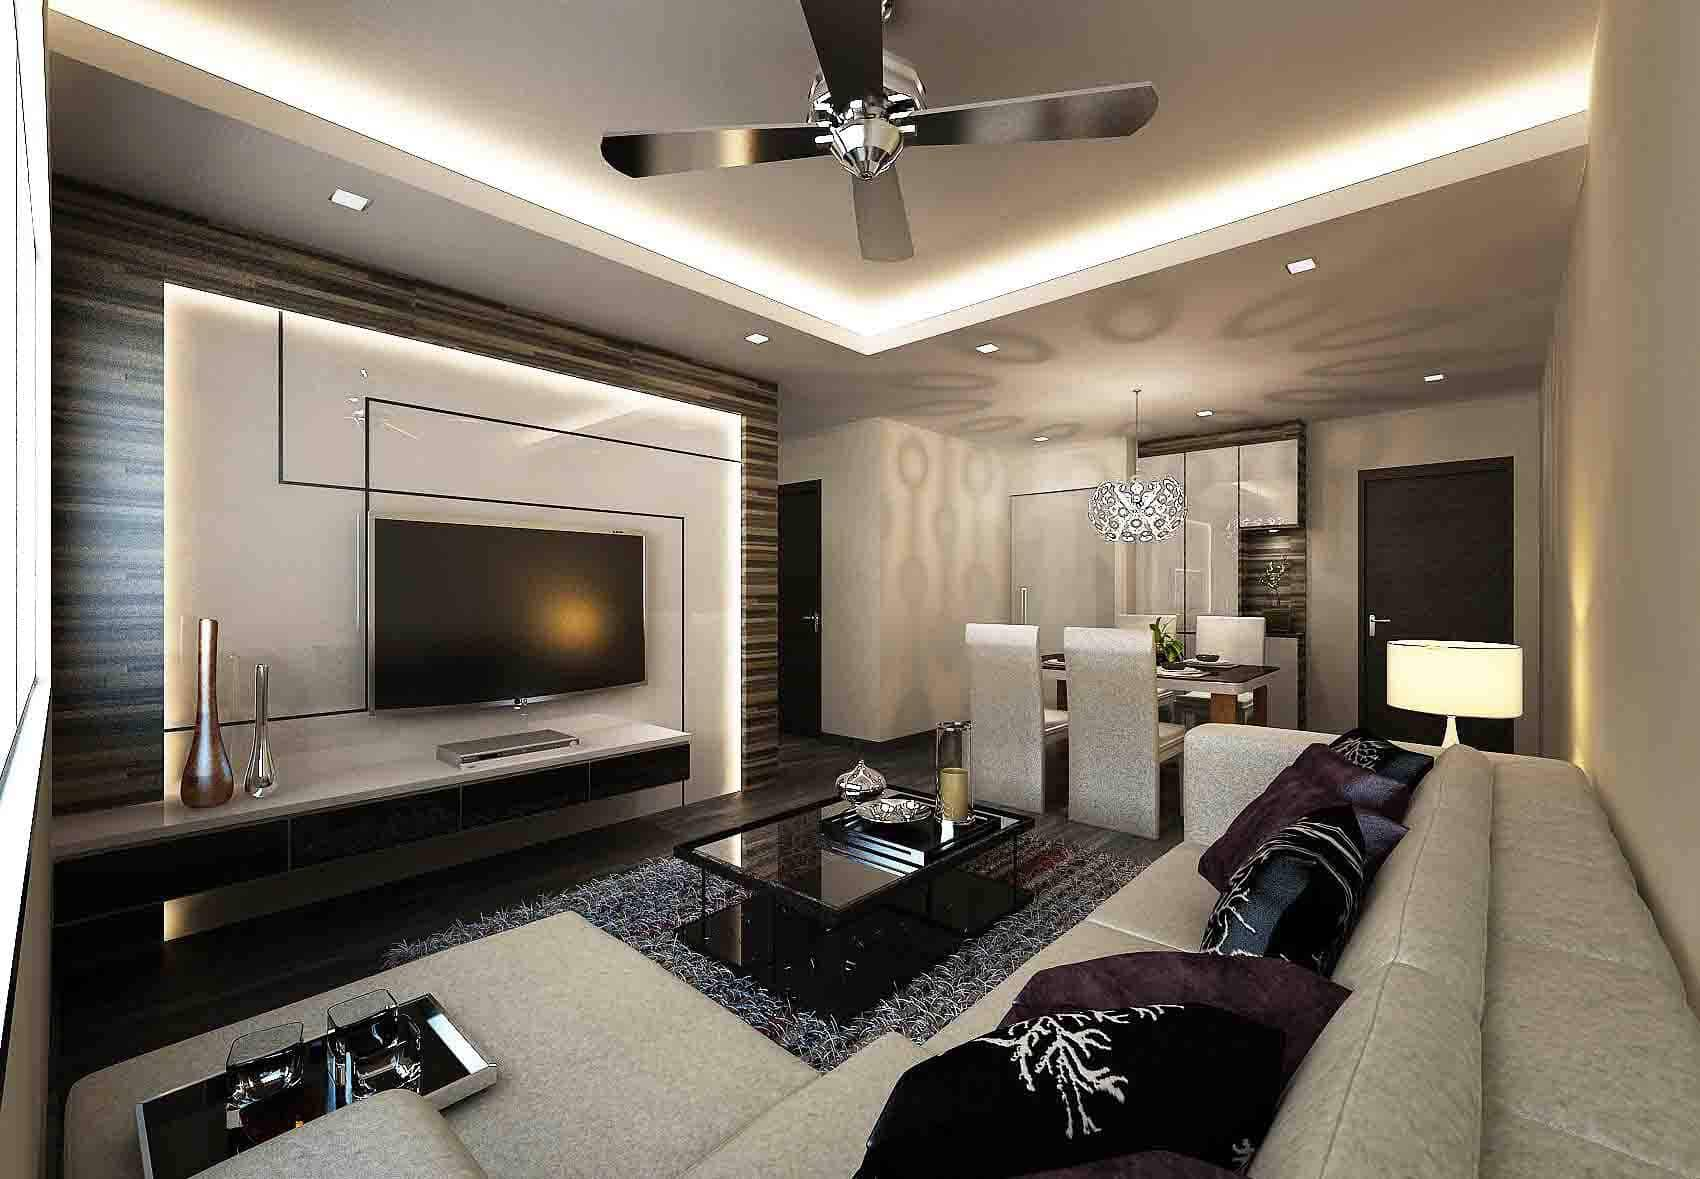 We hope to shed some light upon the living room design ideas in this  article.